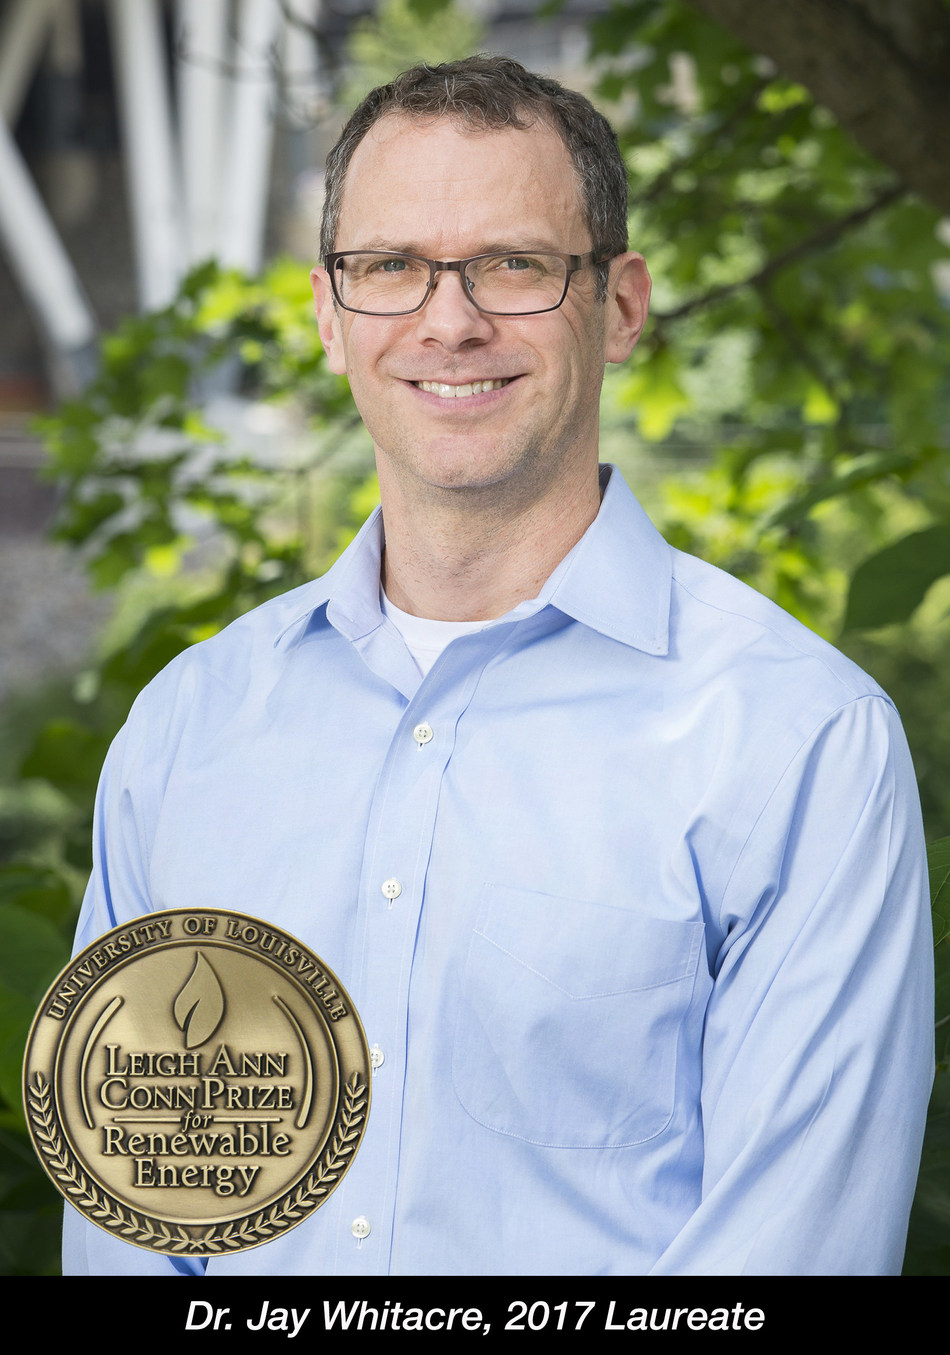 Jay Whitacre is the winner of the 2017 Leigh Ann Conn Prize for Renewable Energy from the University of Louisville.